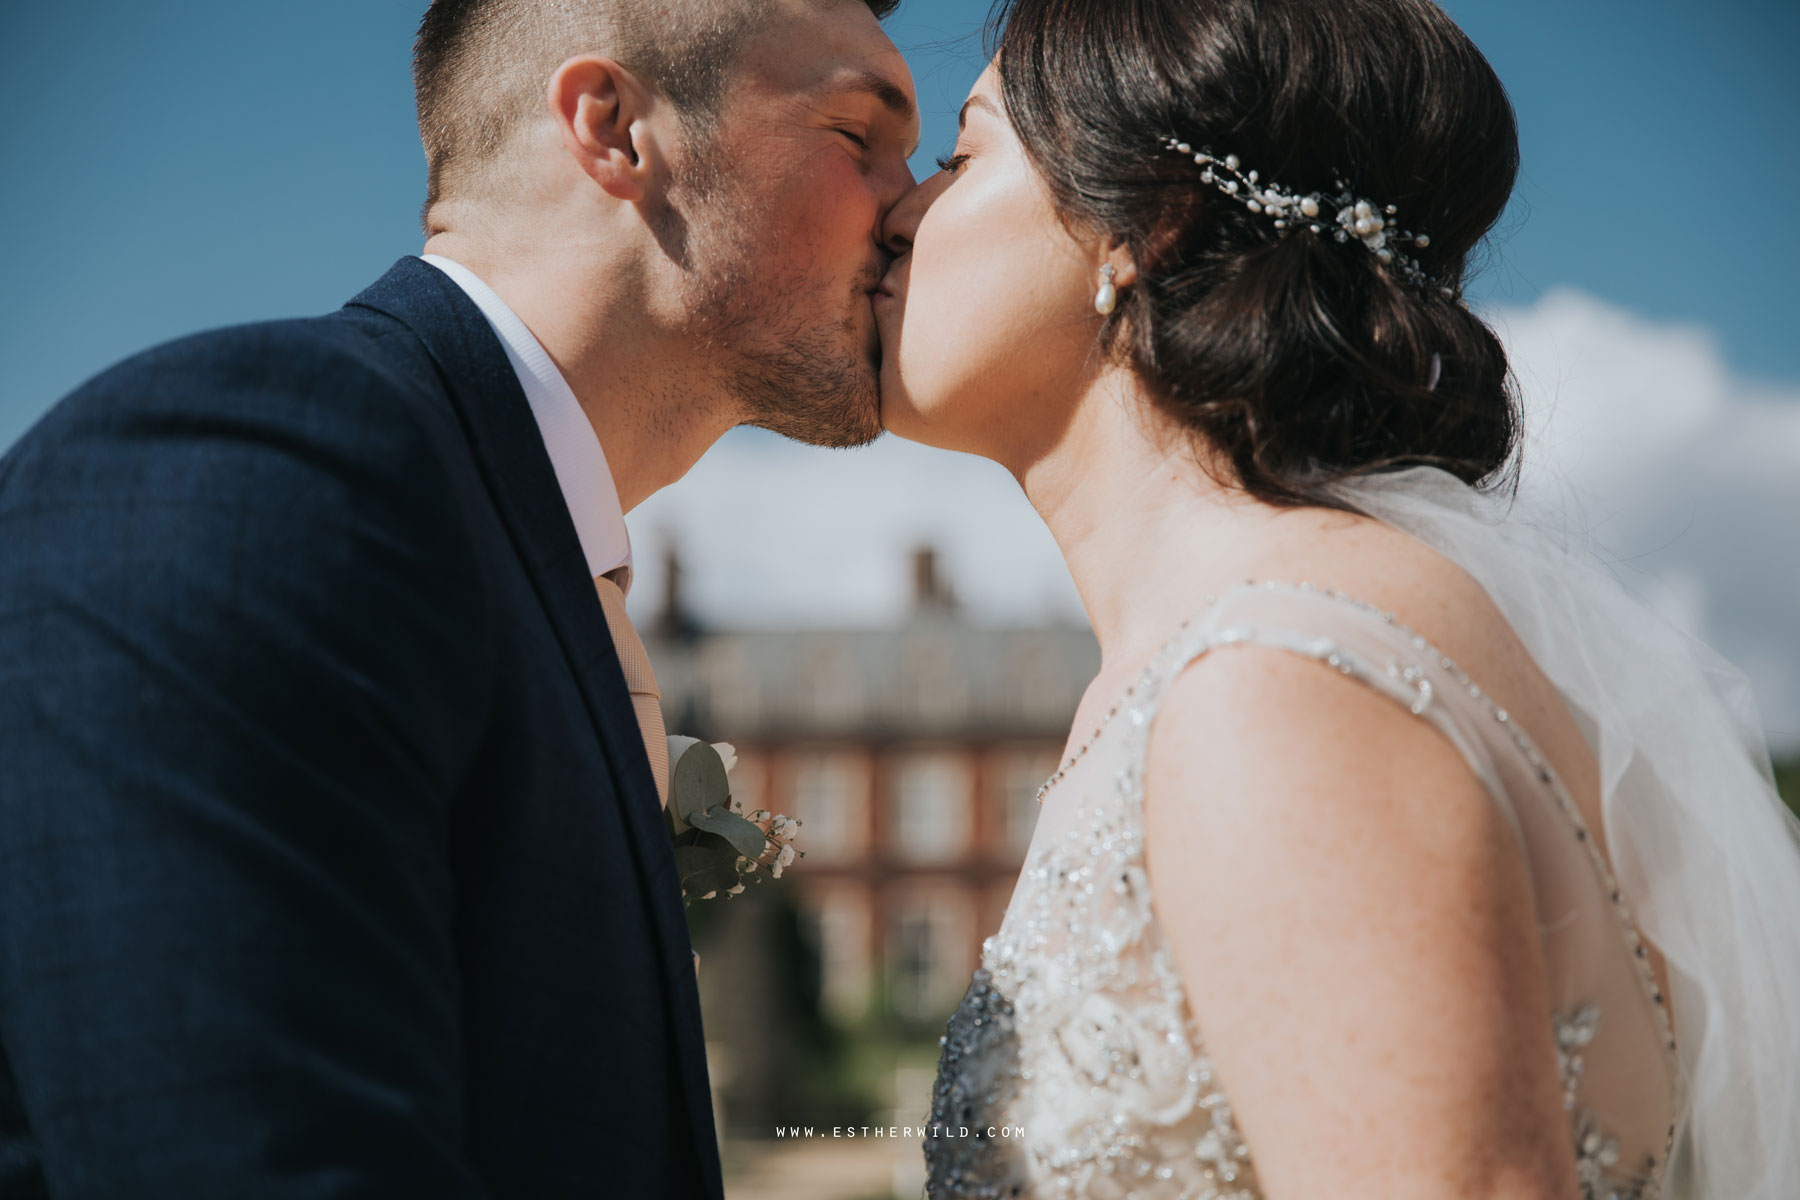 Lynford_Hall_Wedding_Thetford_Mundford_Esther_Wild_Photographer_IMG_1736.jpg